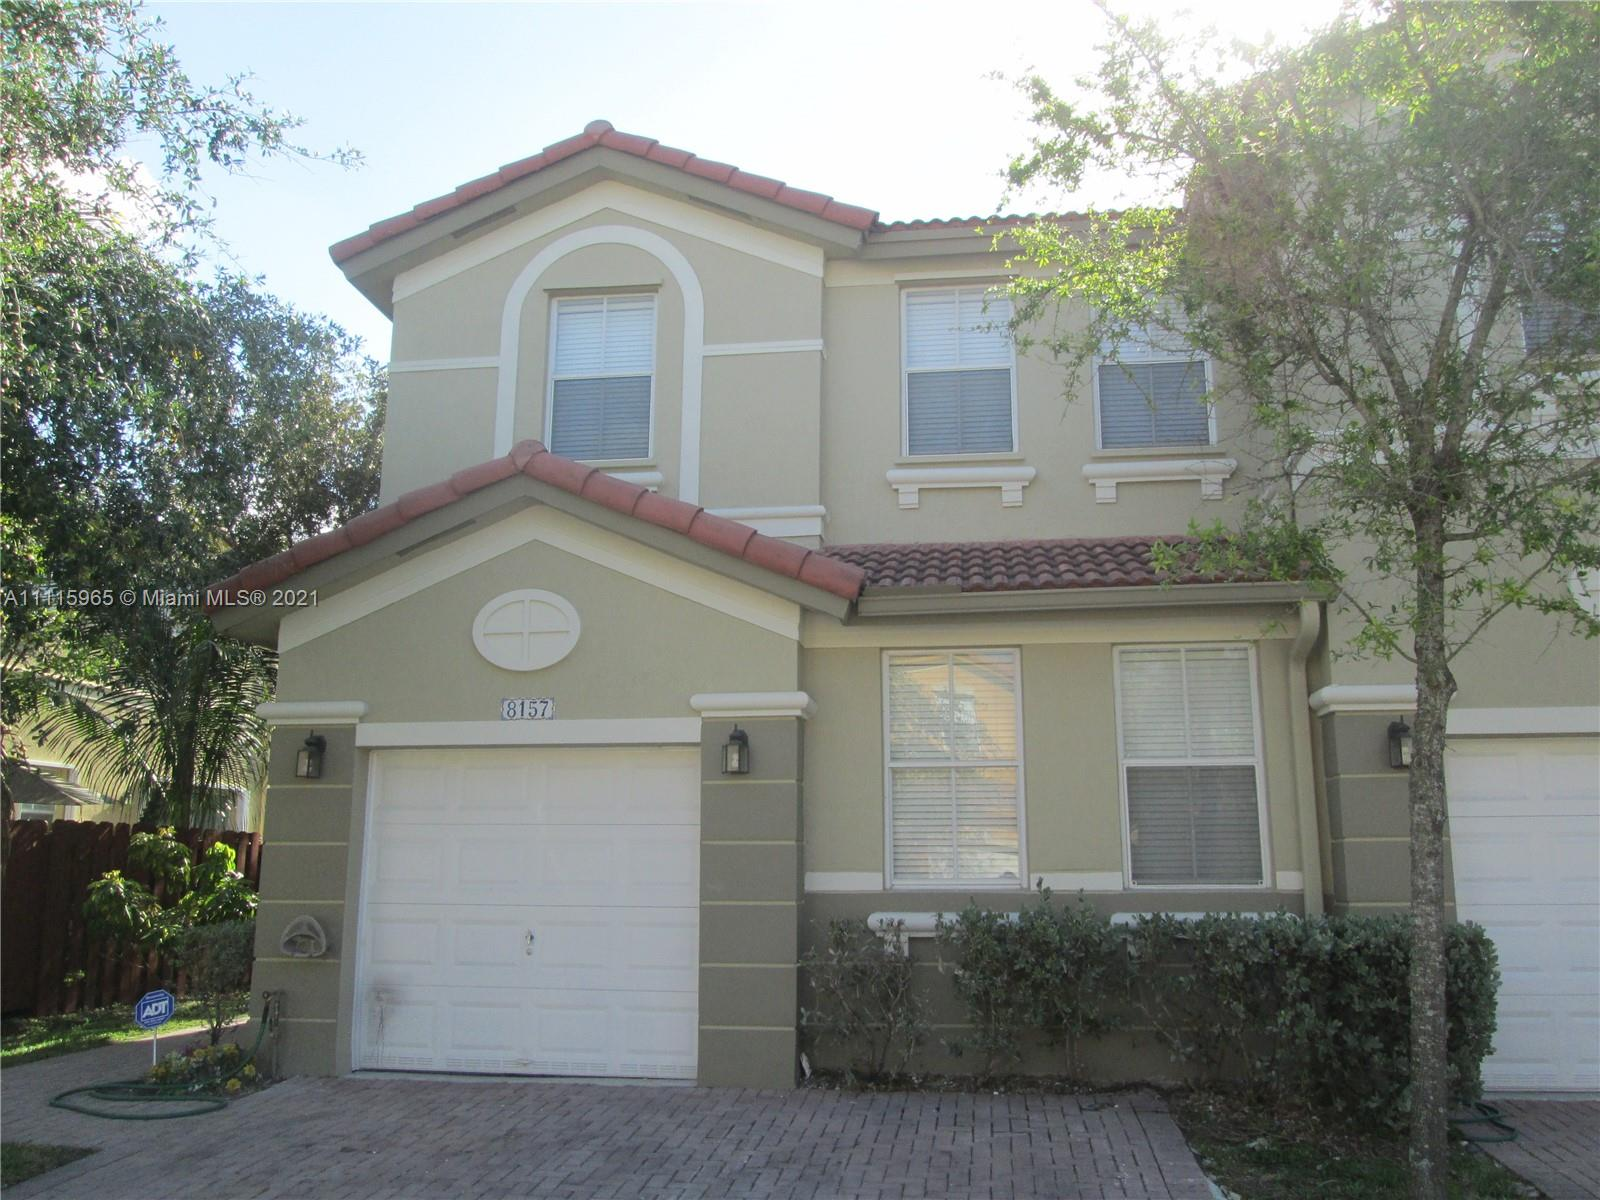 Single Family Home,For Sale,8157 NW 108th Pl, Doral, Florida 33178,Brickell,realty,broker,condos near me